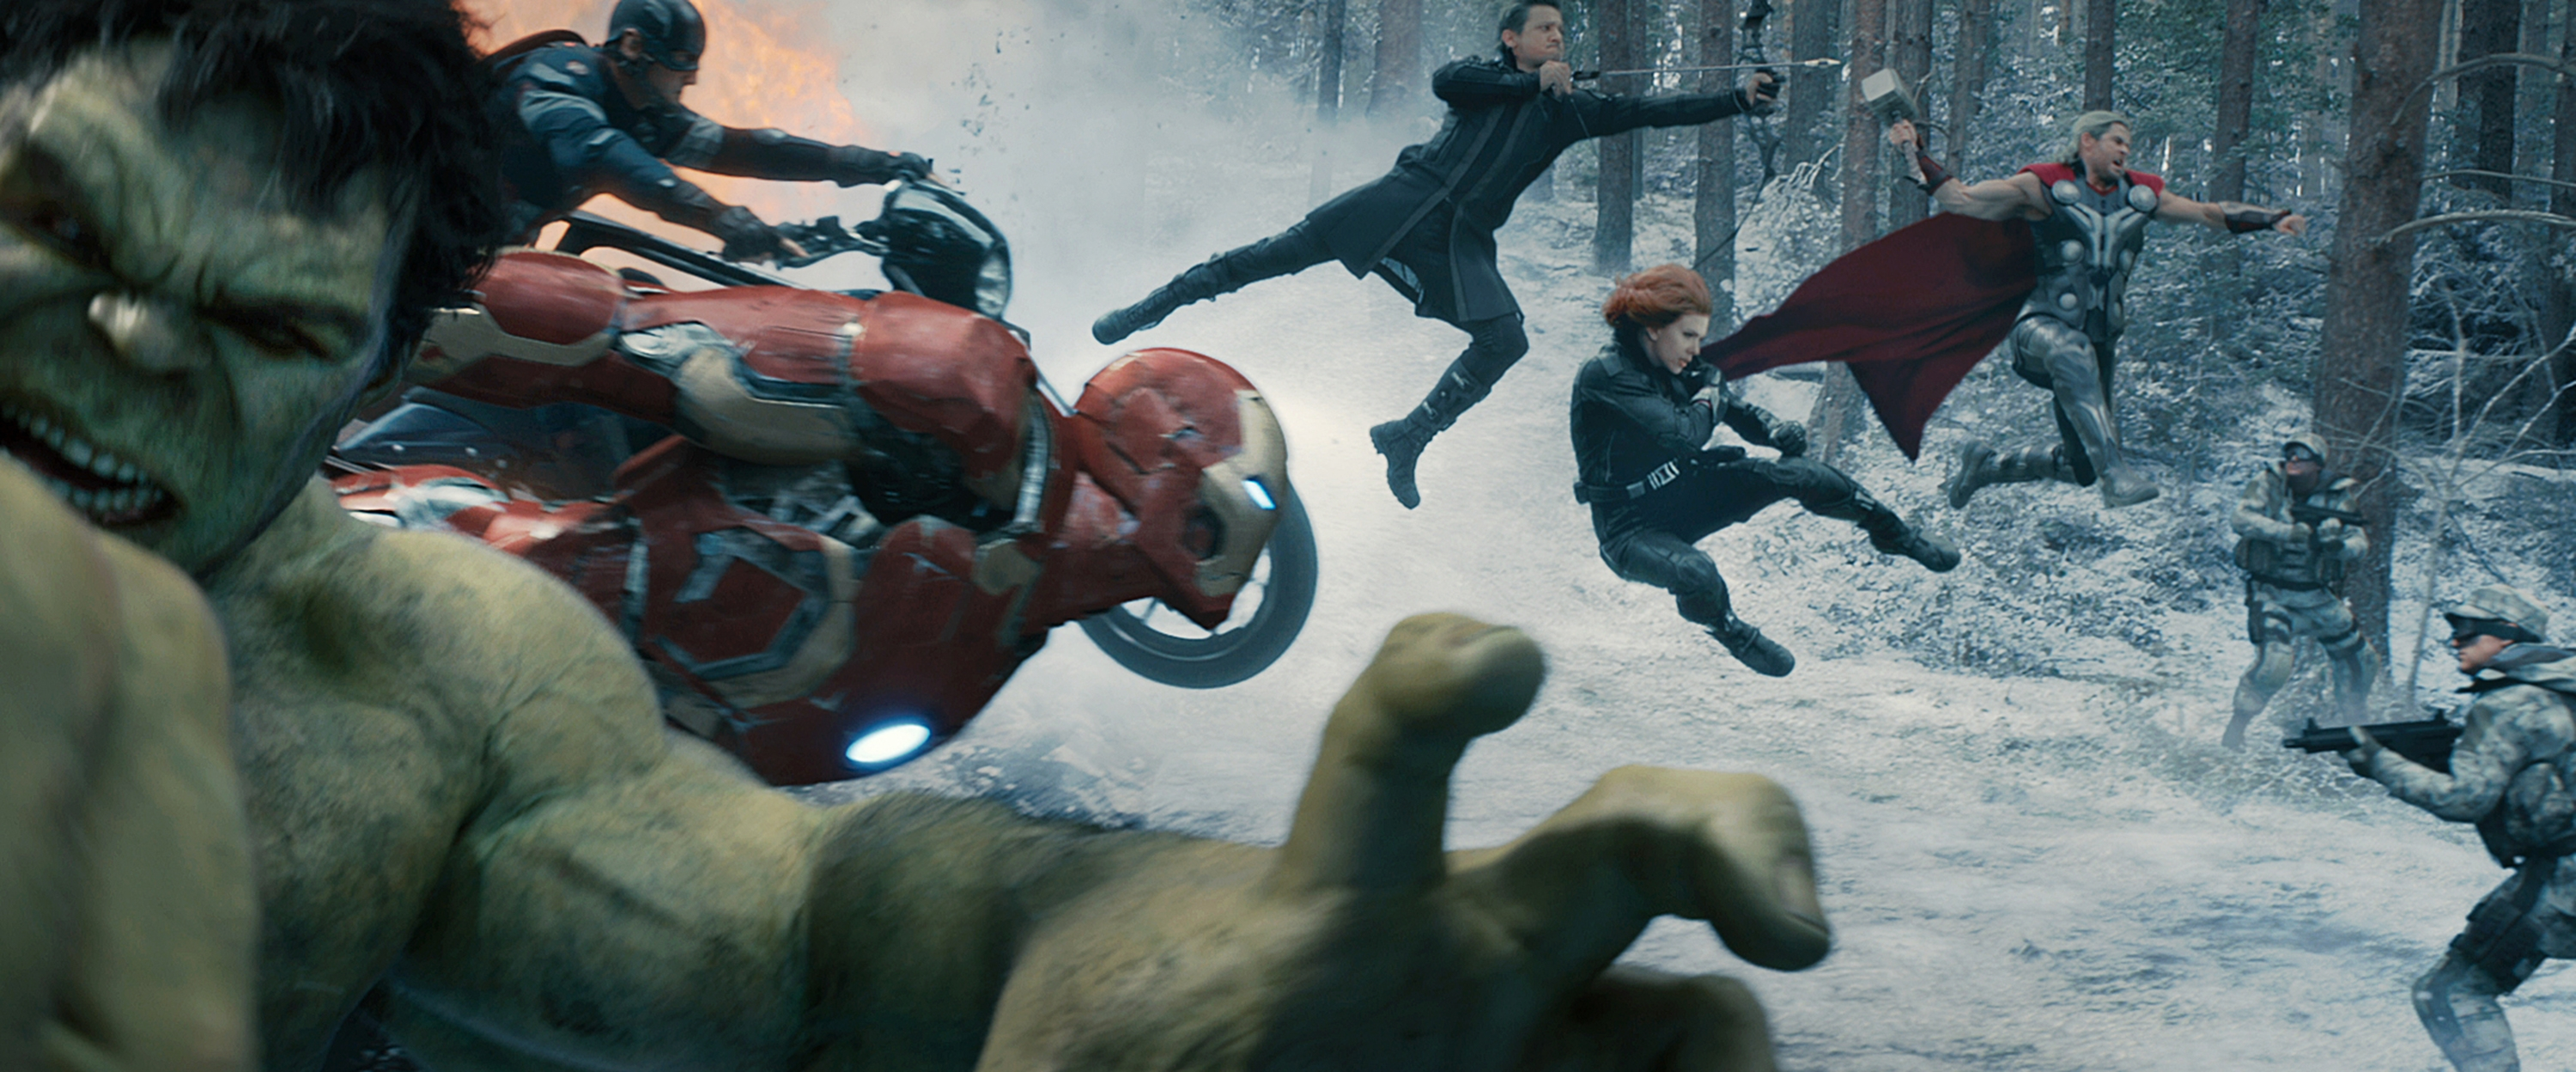 """From left, Hulk (Mark Ruffalo), Captain America (Chris Evans), Iron Man (Robert Downey Jr.), Hawkeye (Jeremy Renner), Black Widow (Scarlett Johansson) and Thor (Chris Hemsworth) star in """"Avengers: Age of Ultron,"""" which opens Thursday night in area theaters."""